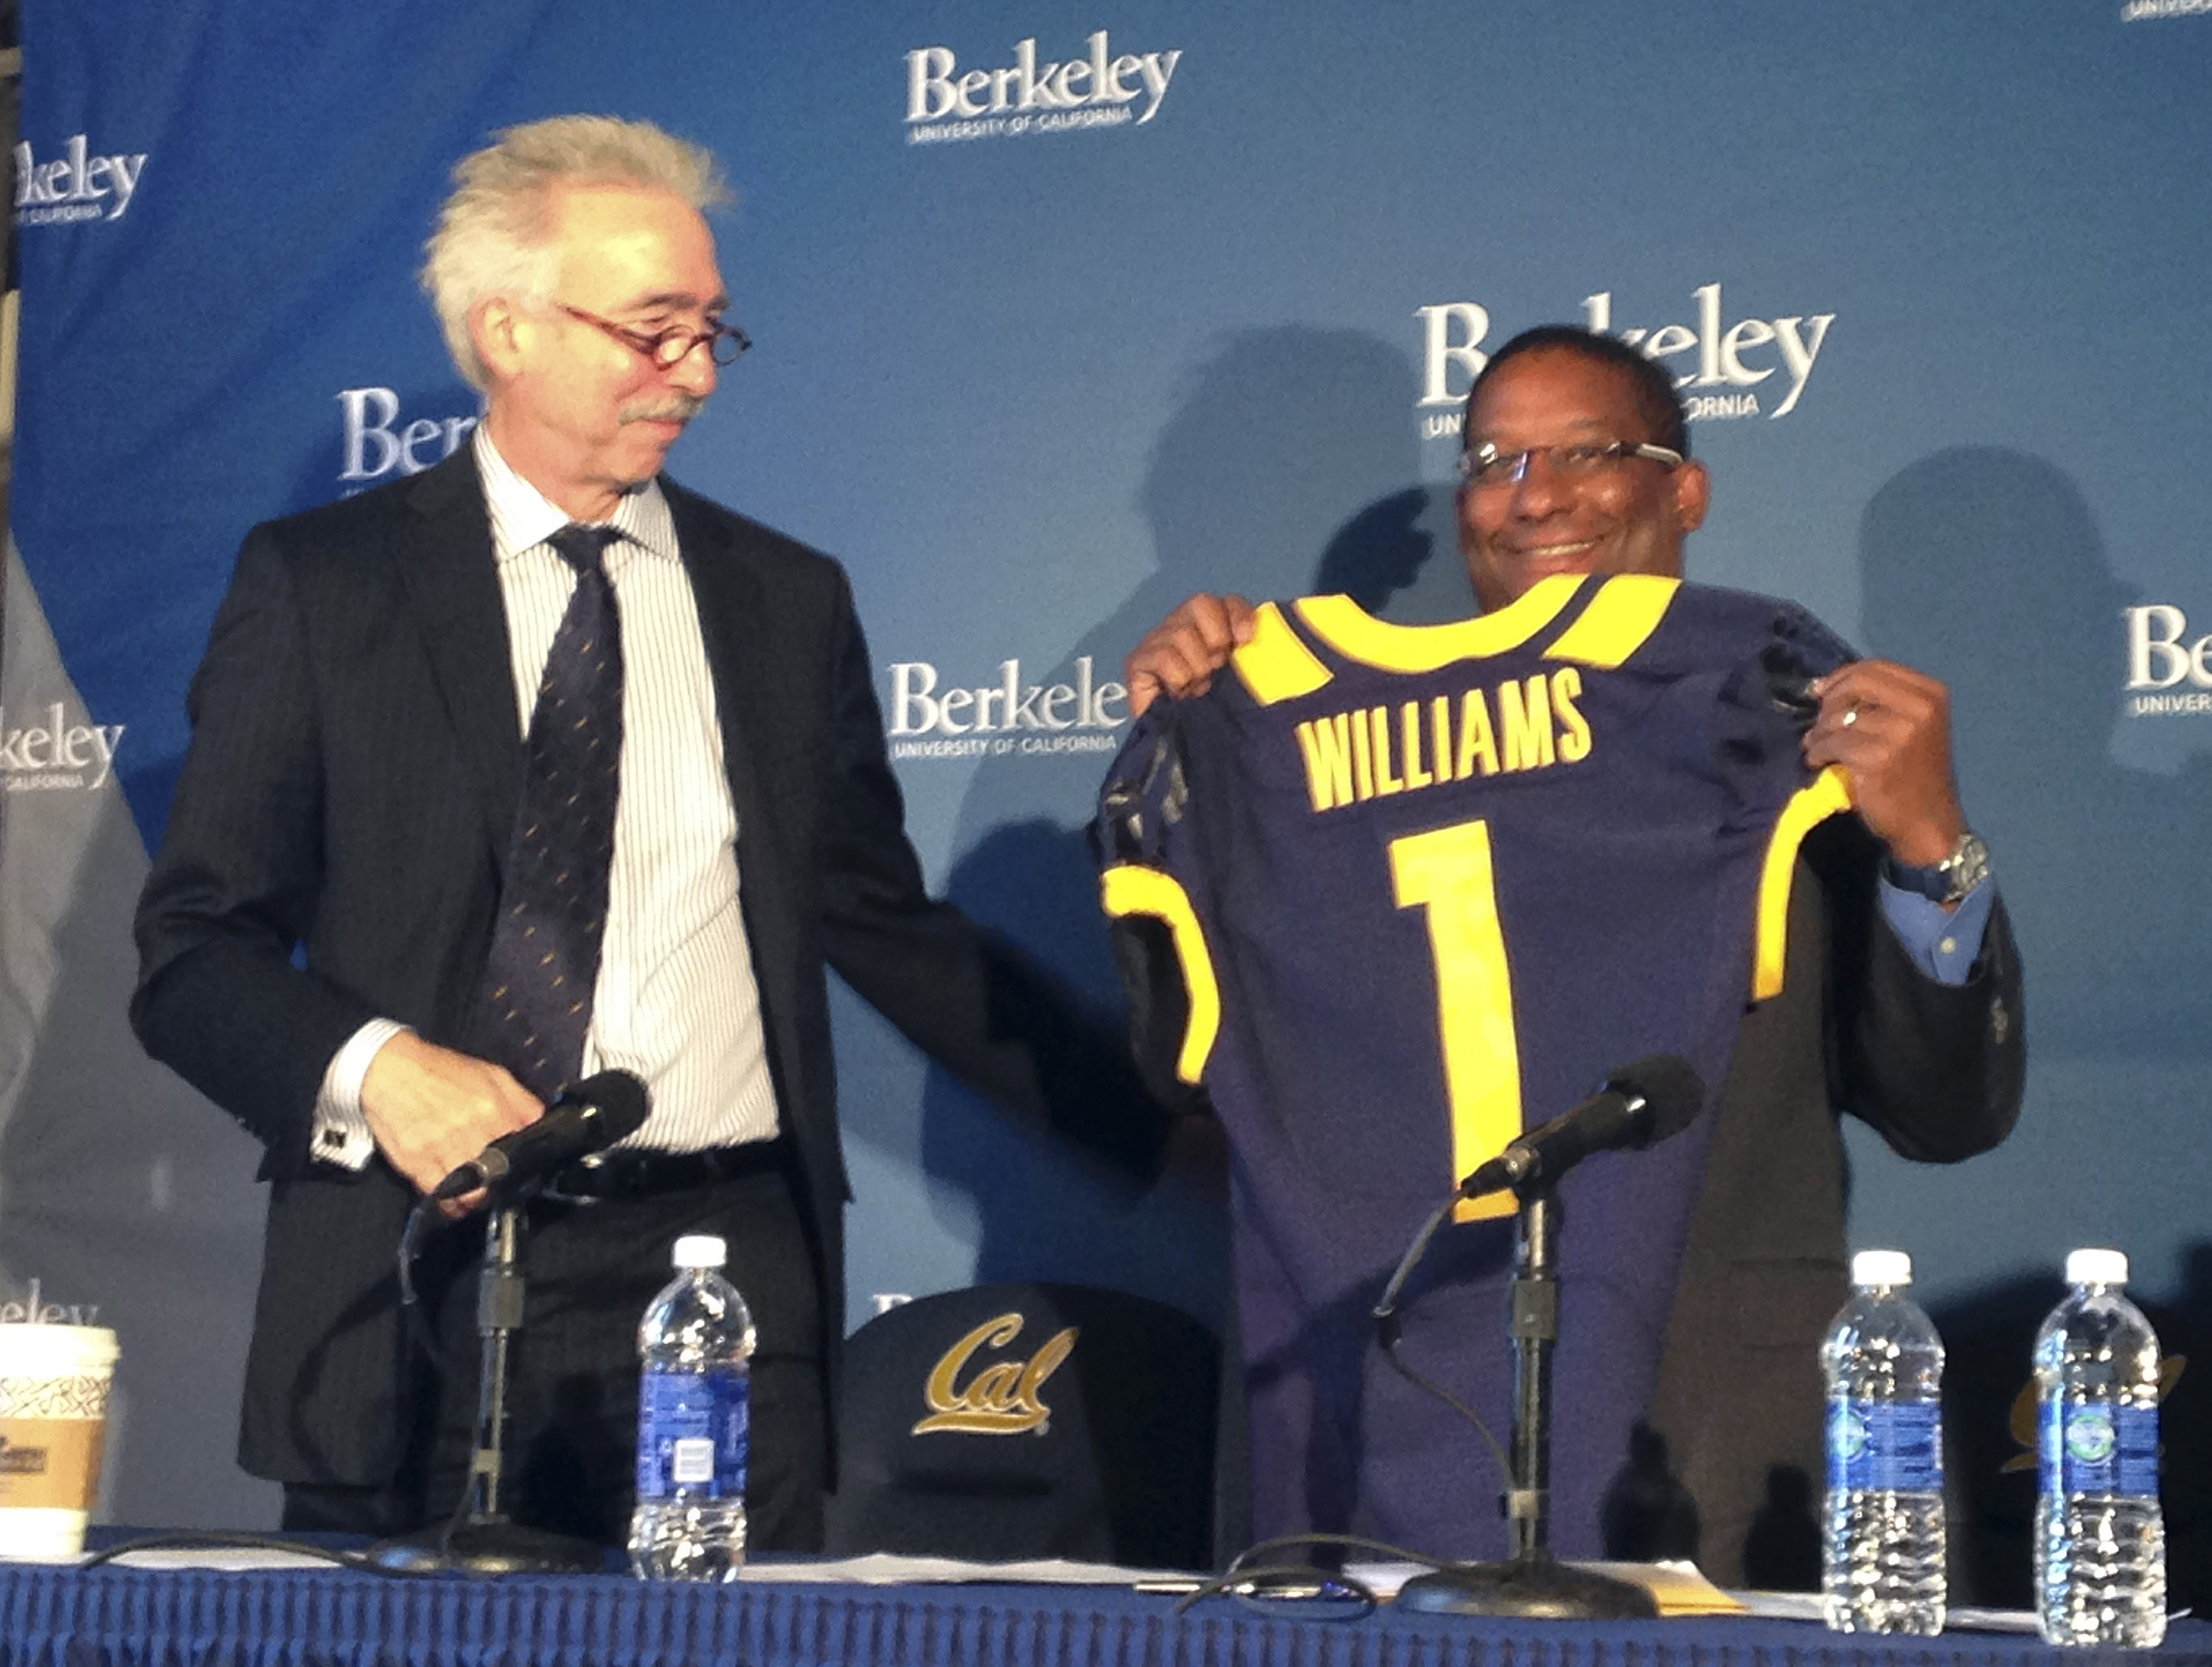 Chancellor Nicholas Dirks, left, presents a jersey to Michael Williams, right, after he was named the athletic director at the University of California, Berkeley Friday, May 8, 2015, in Berkeley, Calif. Williams insisted he didn't want to be California's